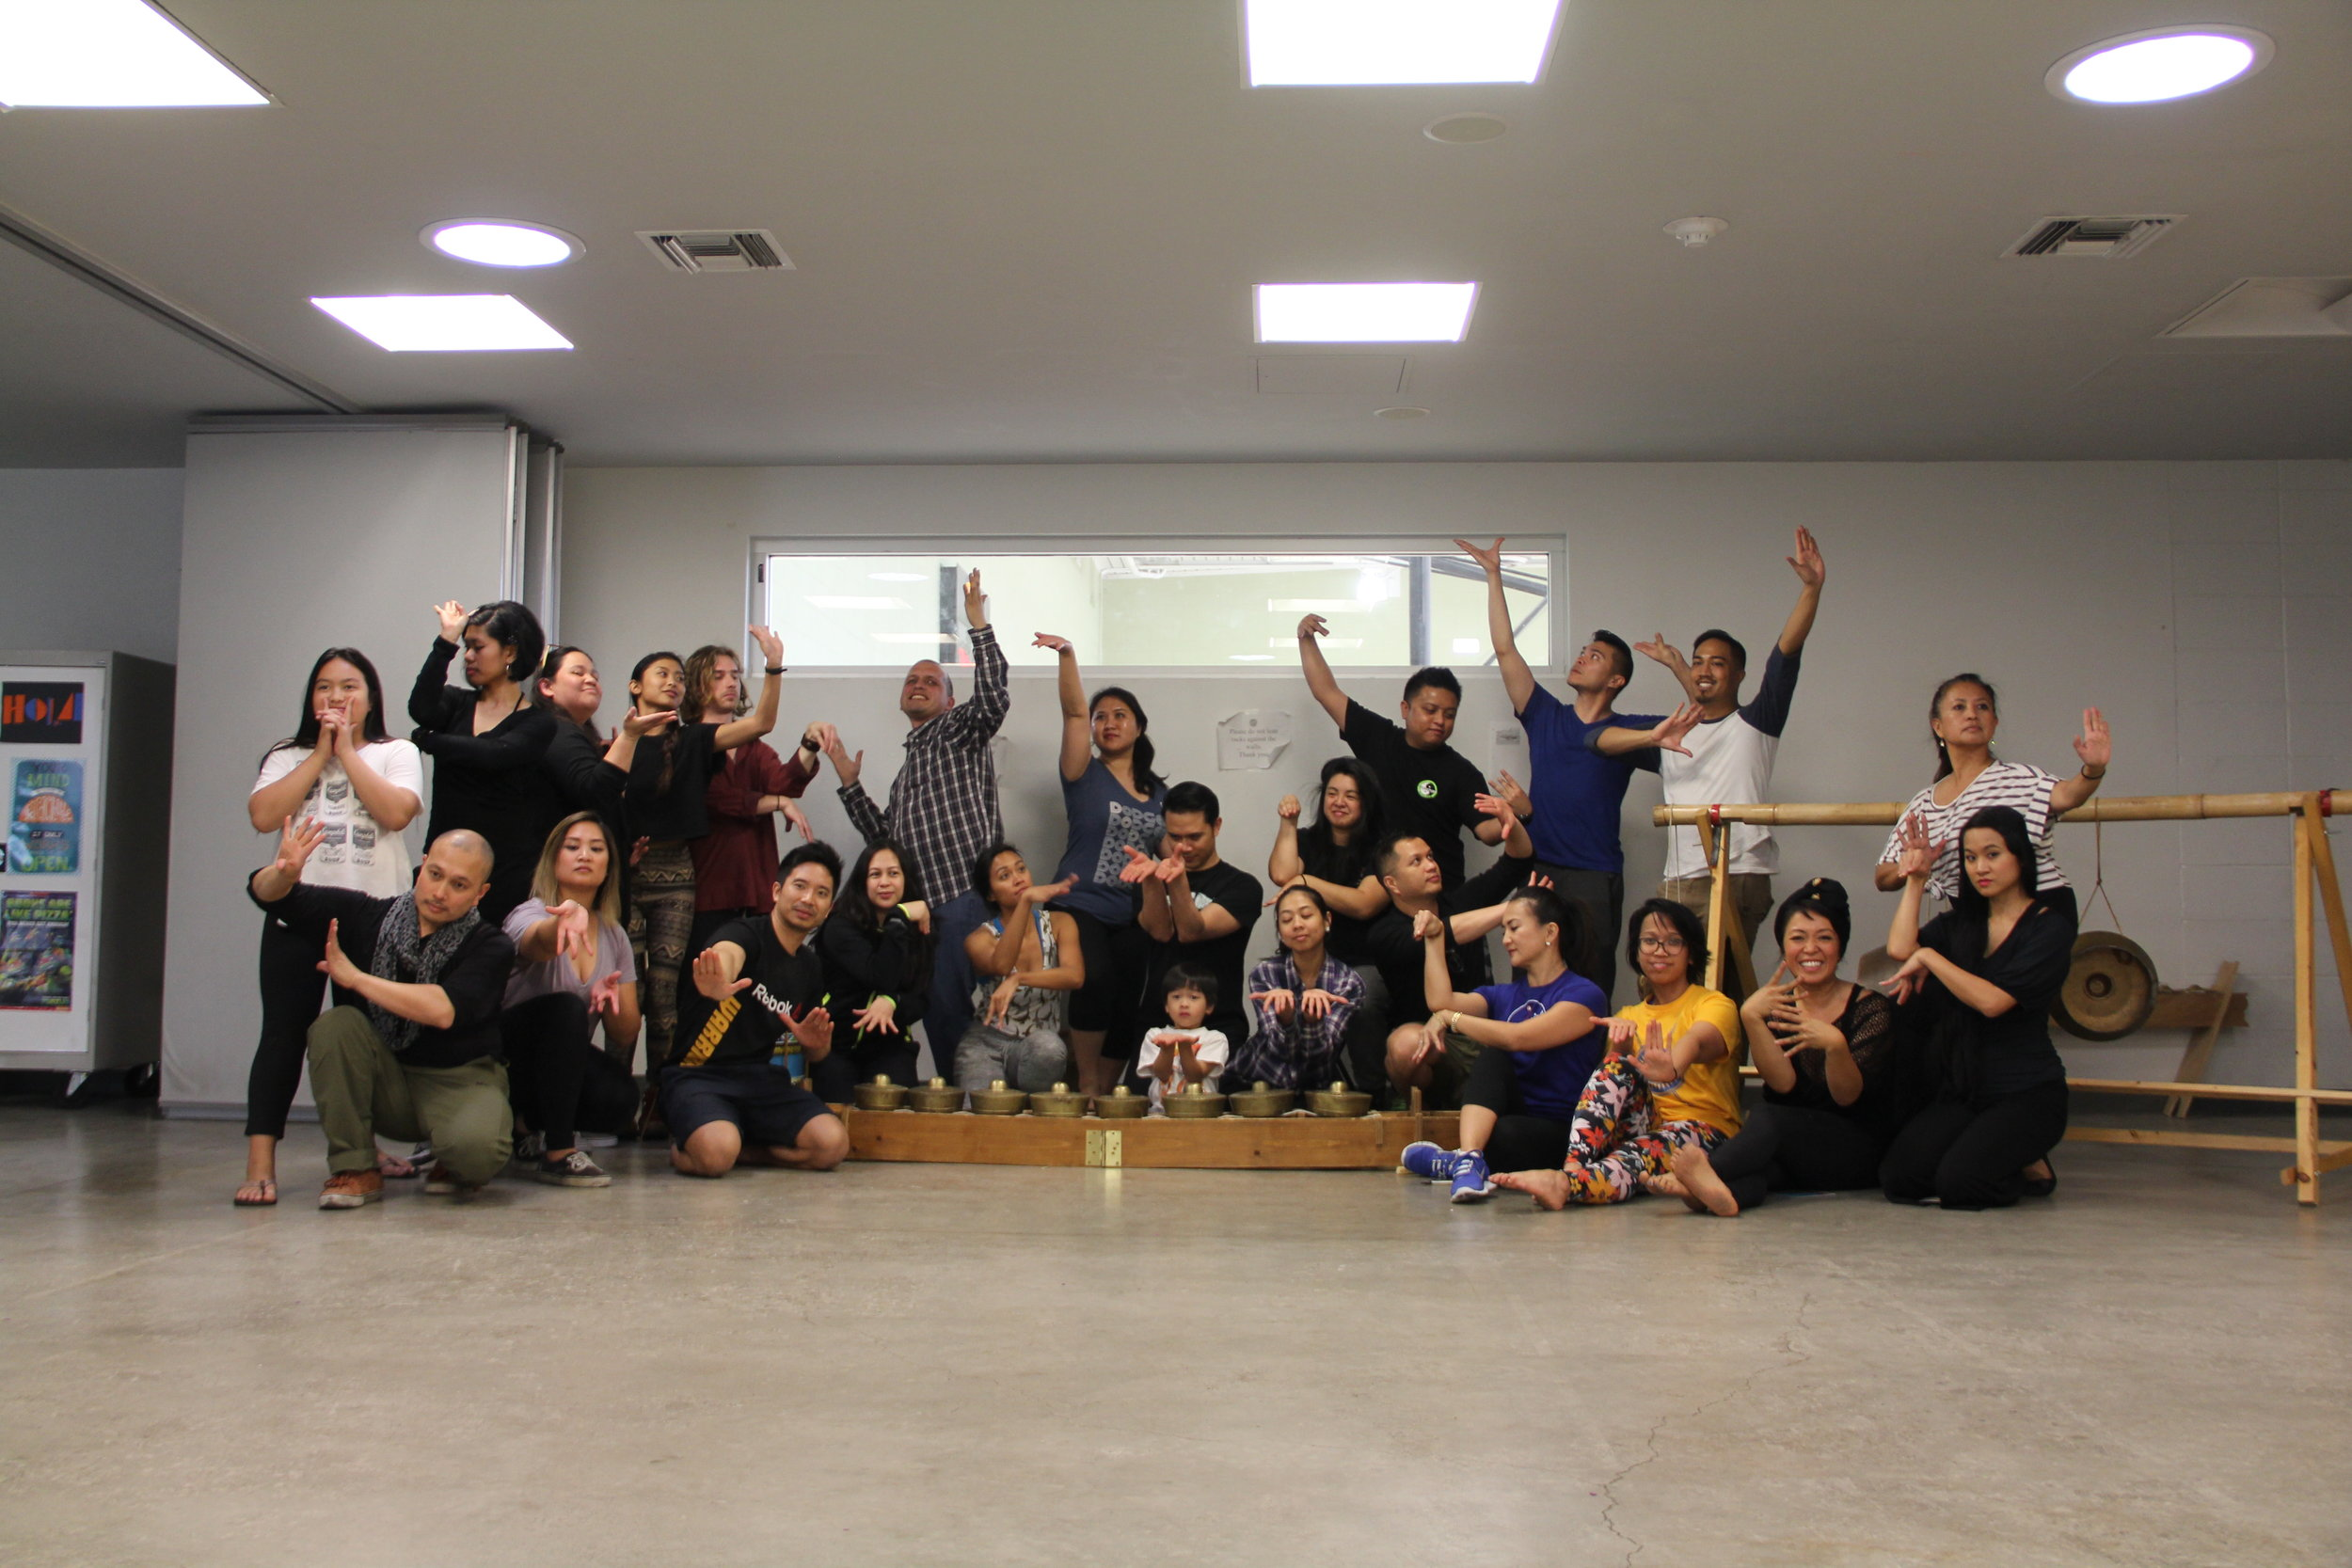 Our beautiful workshop participants striking a  pangalay  pose!